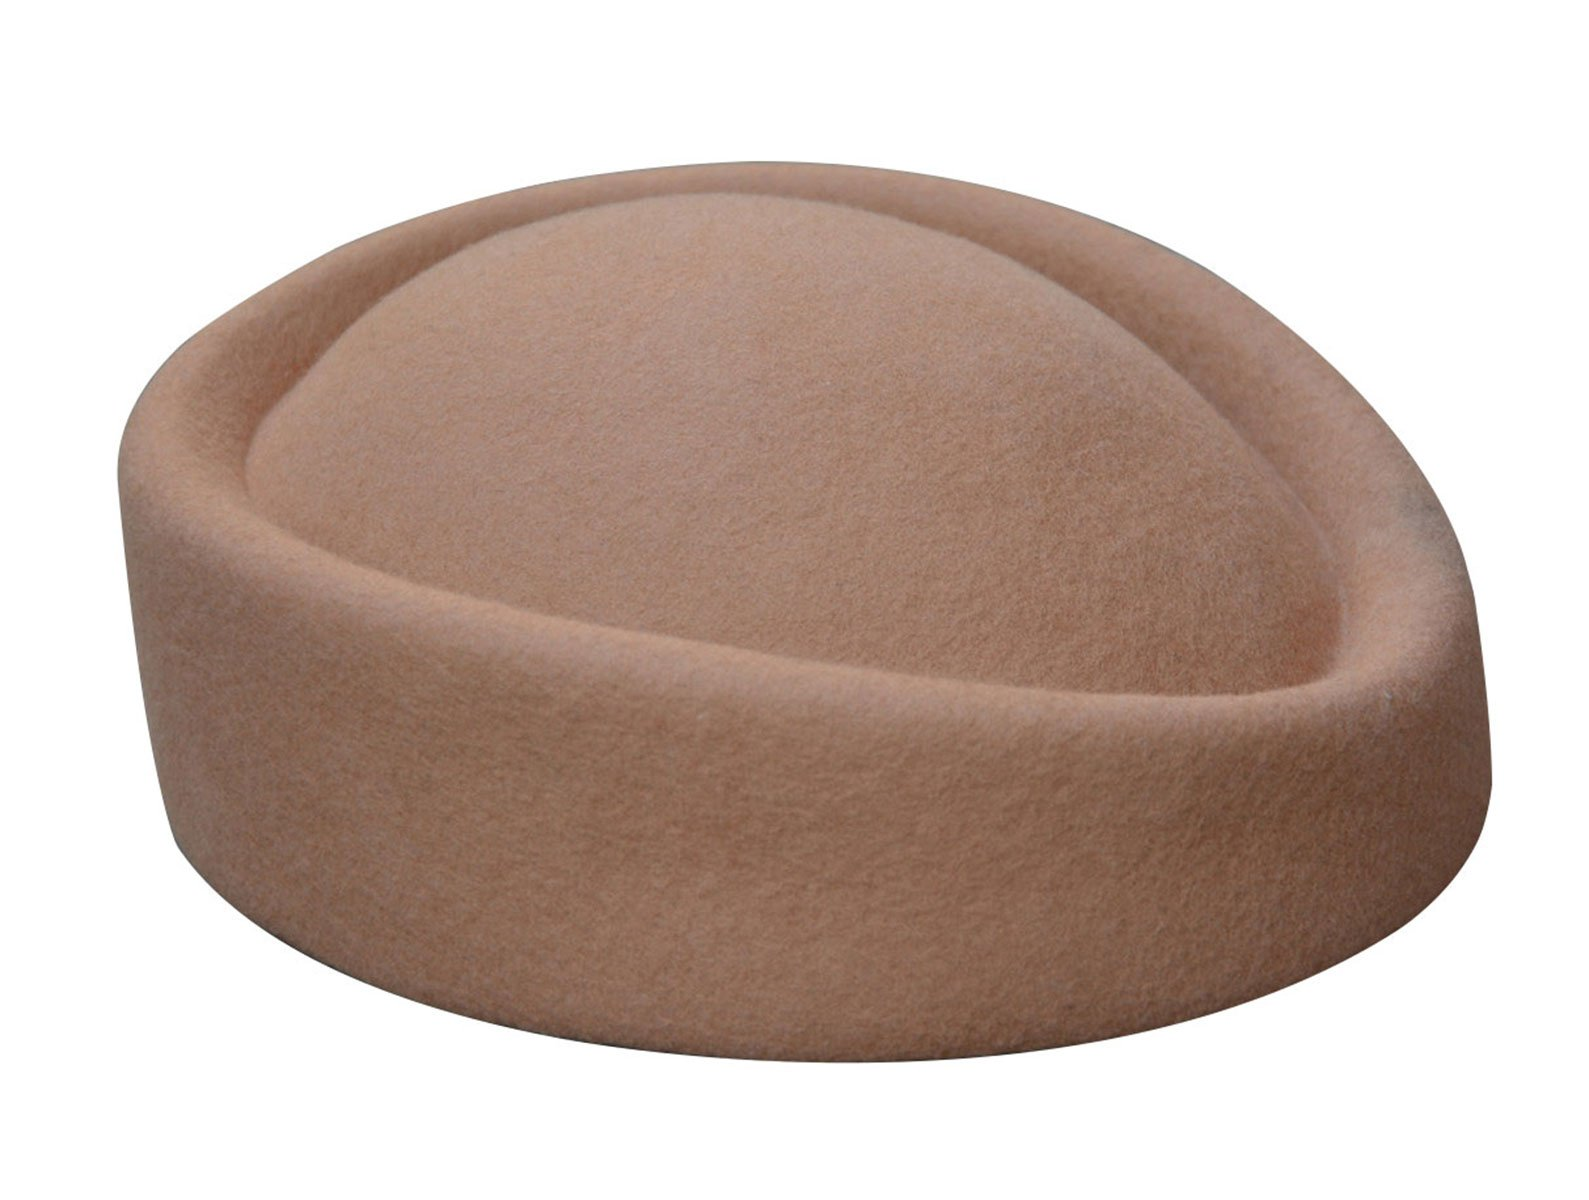 Lawliet Cocktail Fascinator Base Wool Air Hostesses Pillbox Hat Millinery Making A139 (Camel) by Lawliet